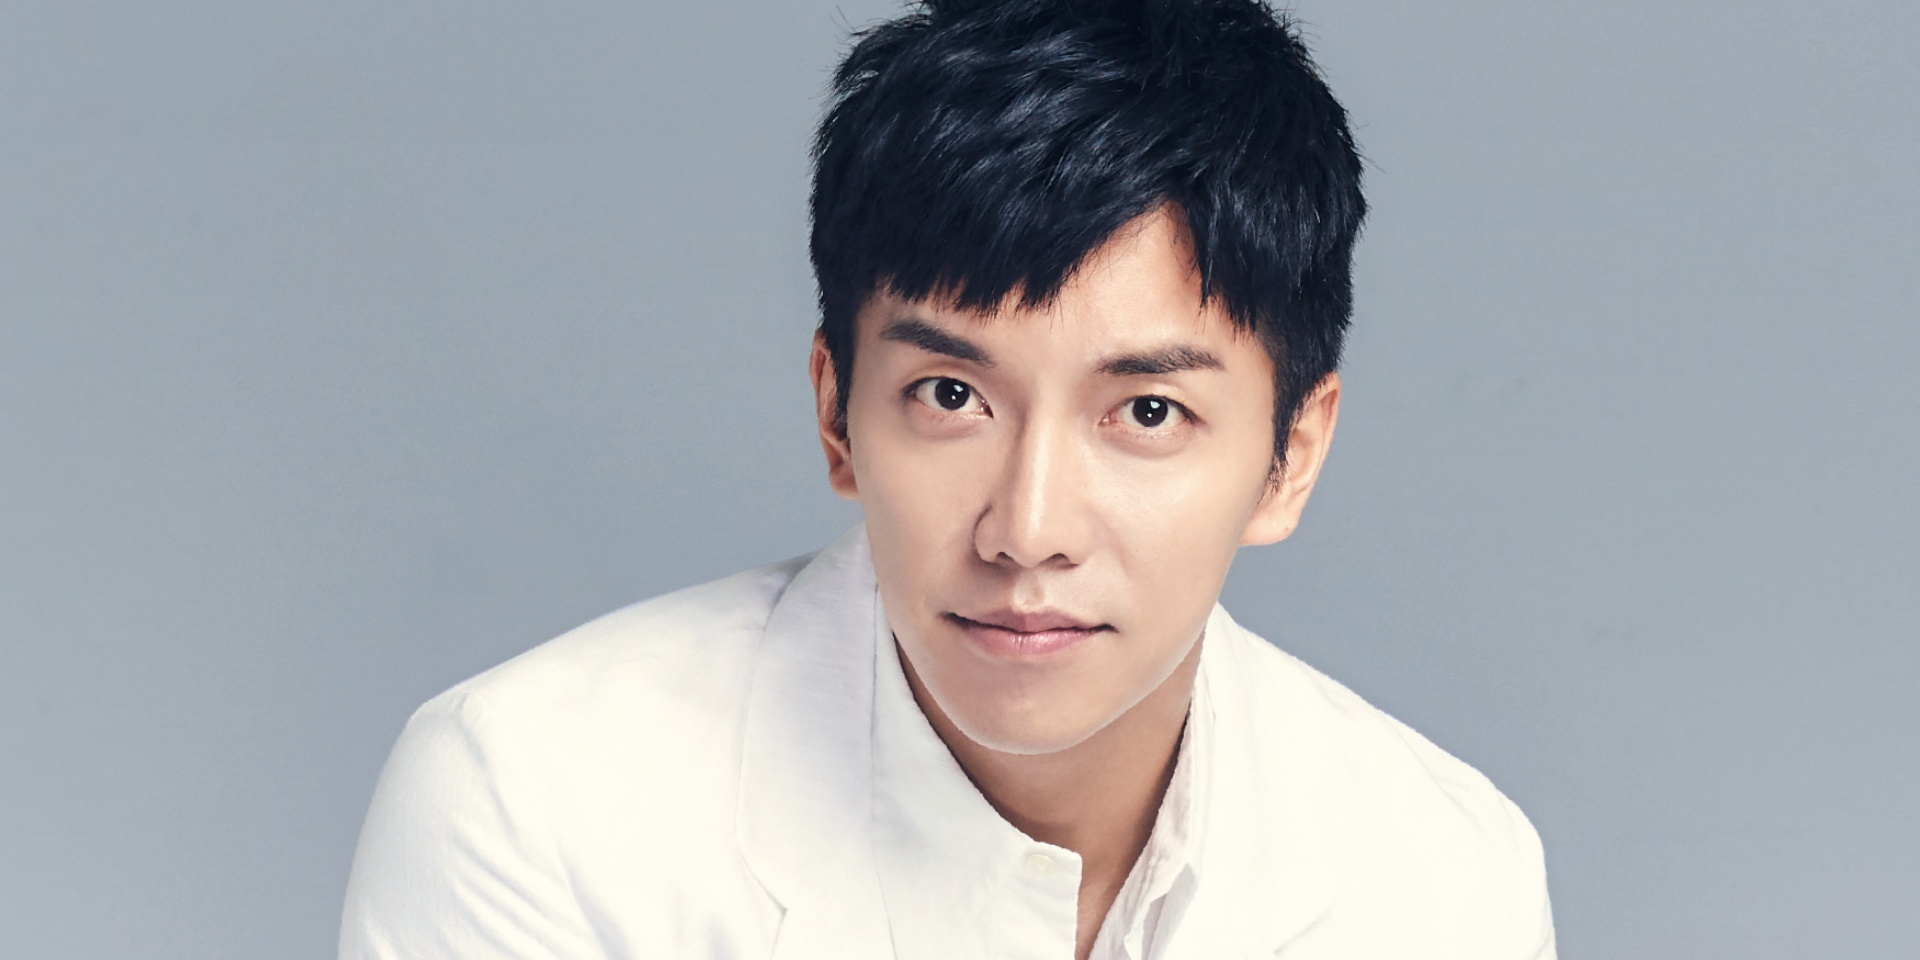 Lee Seung Gi returns to Singapore with Asia fan-meeting tour Vagabond Voyage